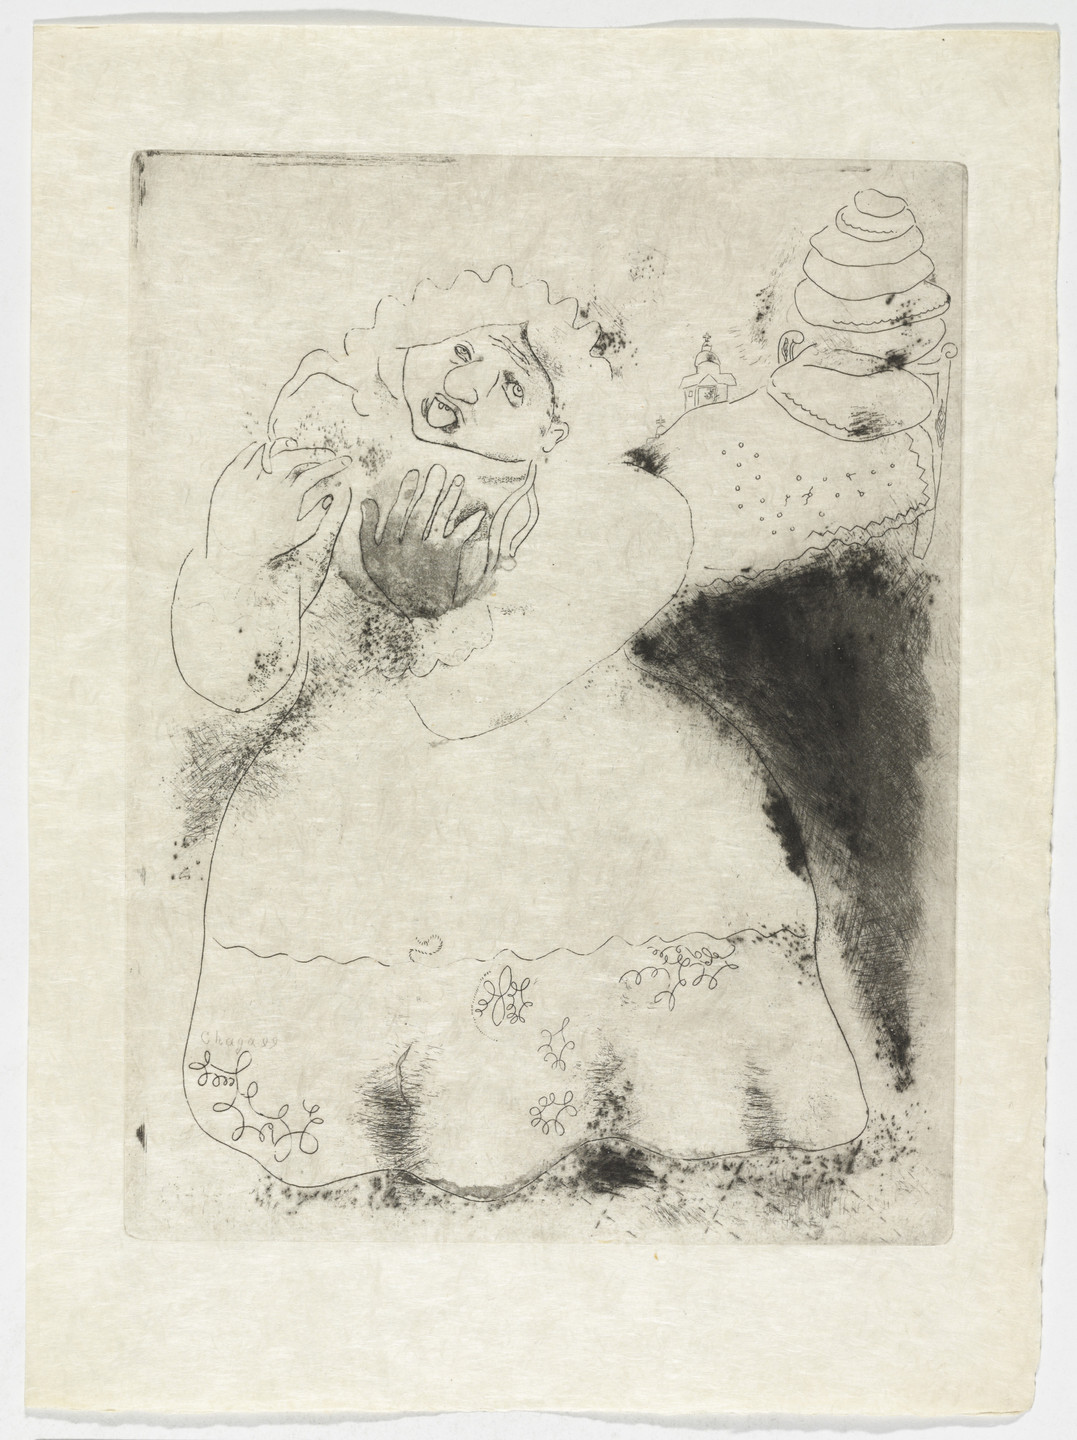 Marc Chagall. Madame Korobotchka, plate XV (supplementary suite) from Les Âmes mortes. 1923-48